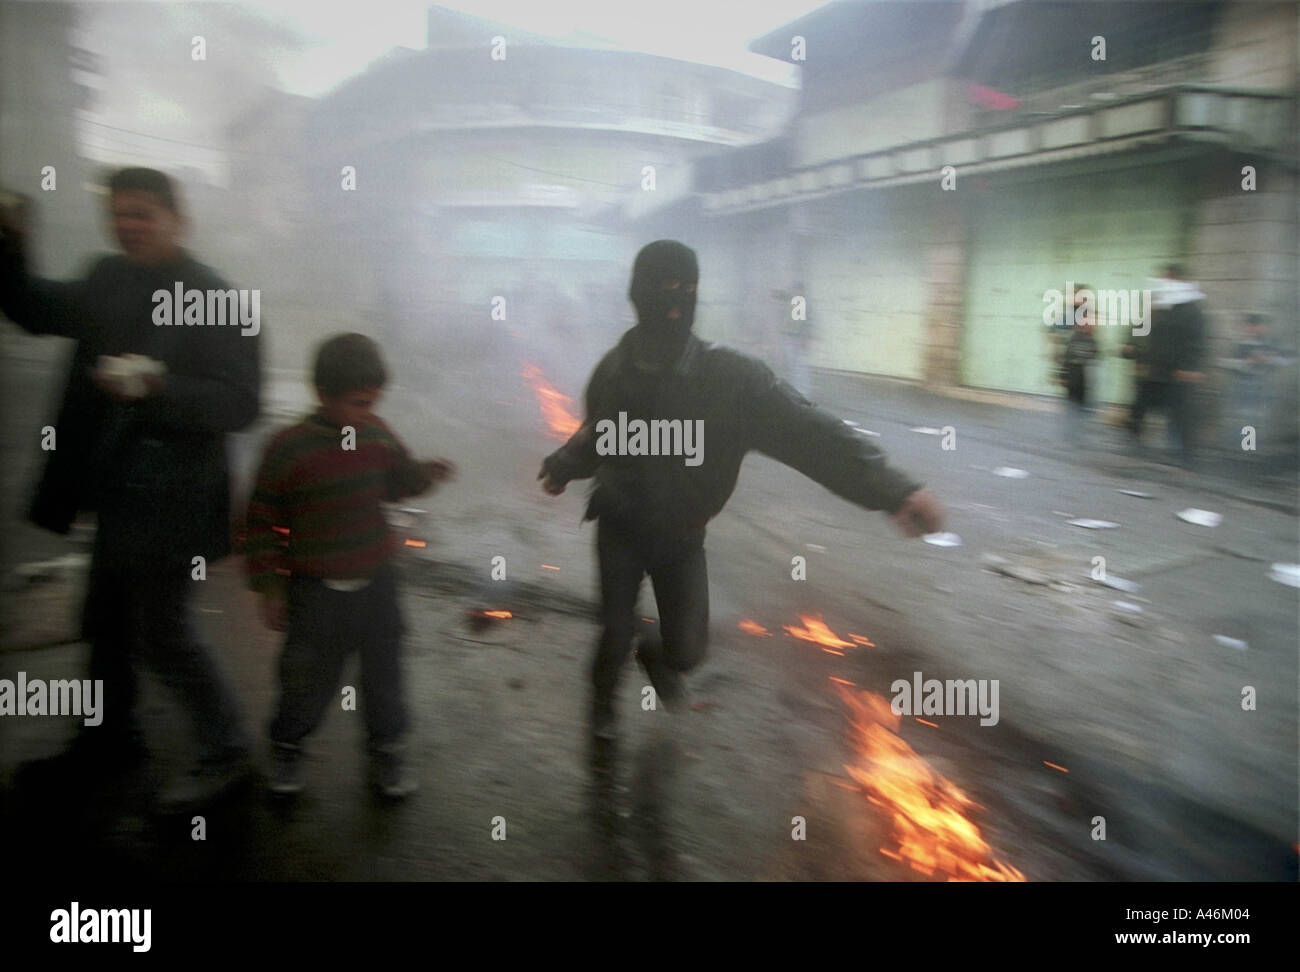 hebron stonethrowers palestinian boys throw stones at the israeli army through a cloud of teargas during a clash in hebron on the west bank 3rd december 2000 after a martyrs funeral during the second intifada - Stock Image